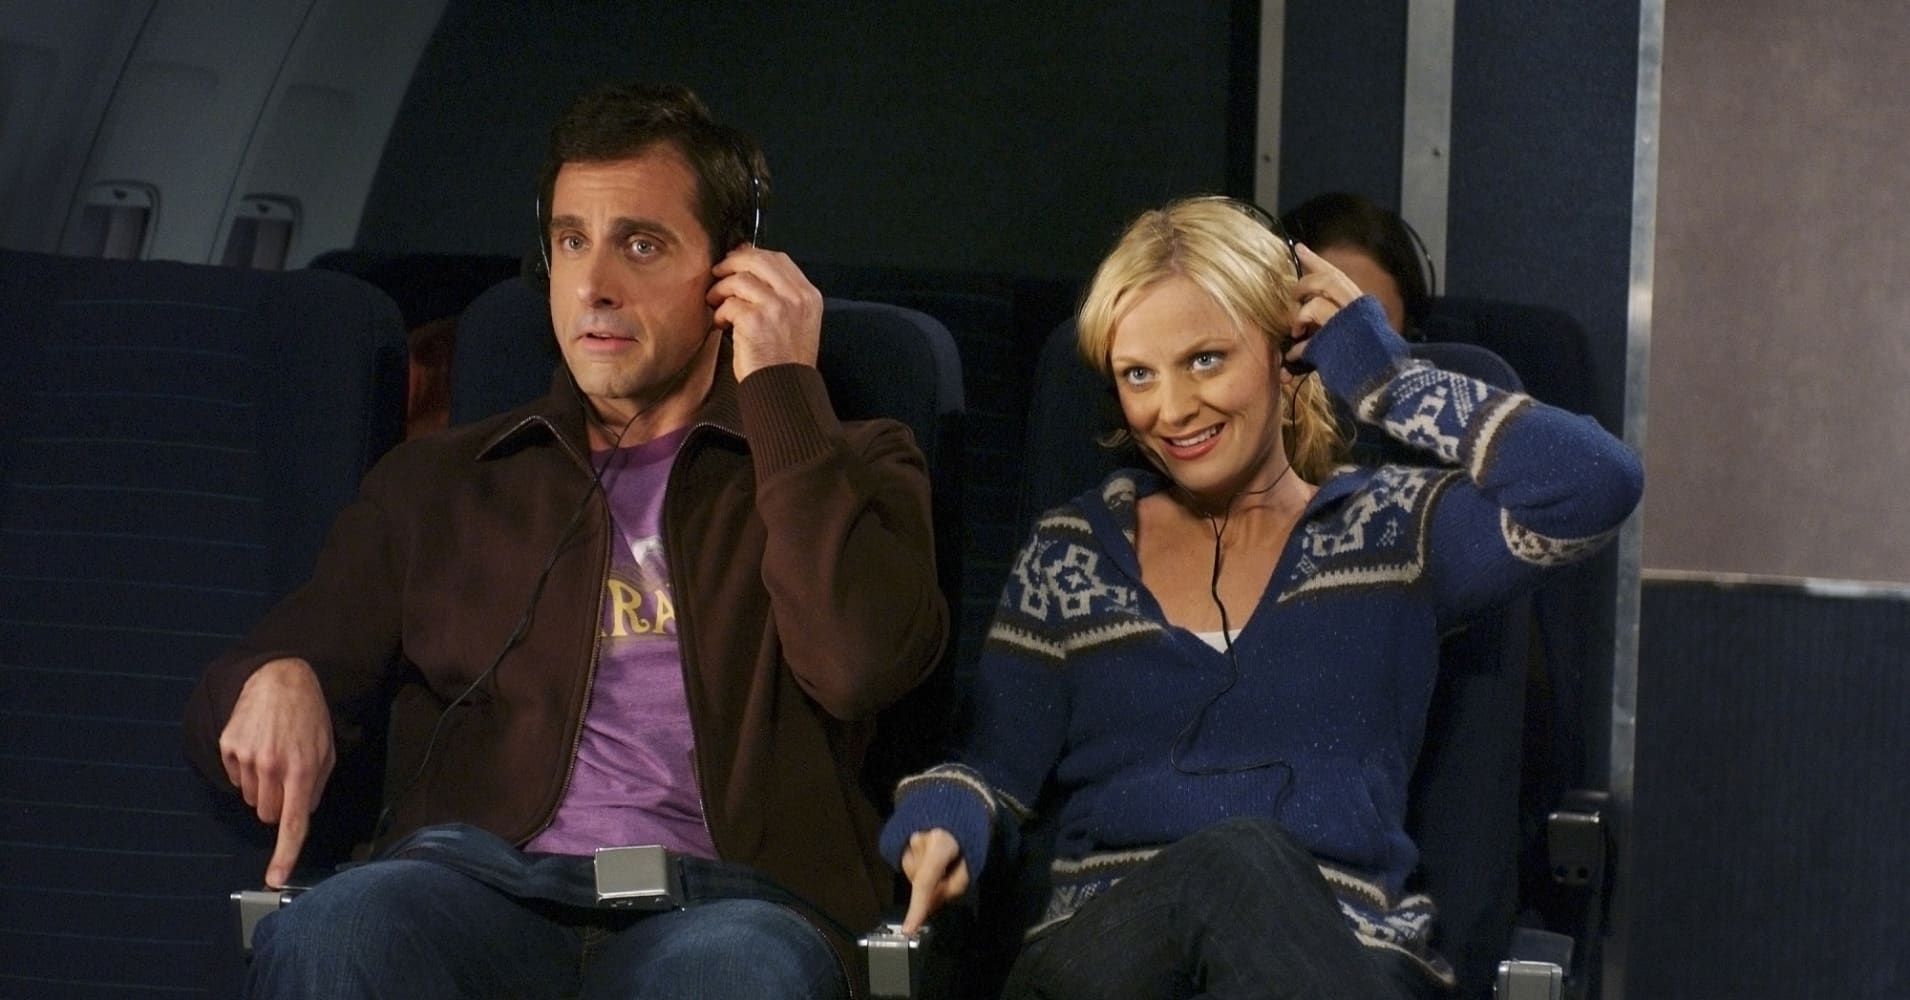 Steve Carell and Amy Poehler in a SNL skit in 2005.